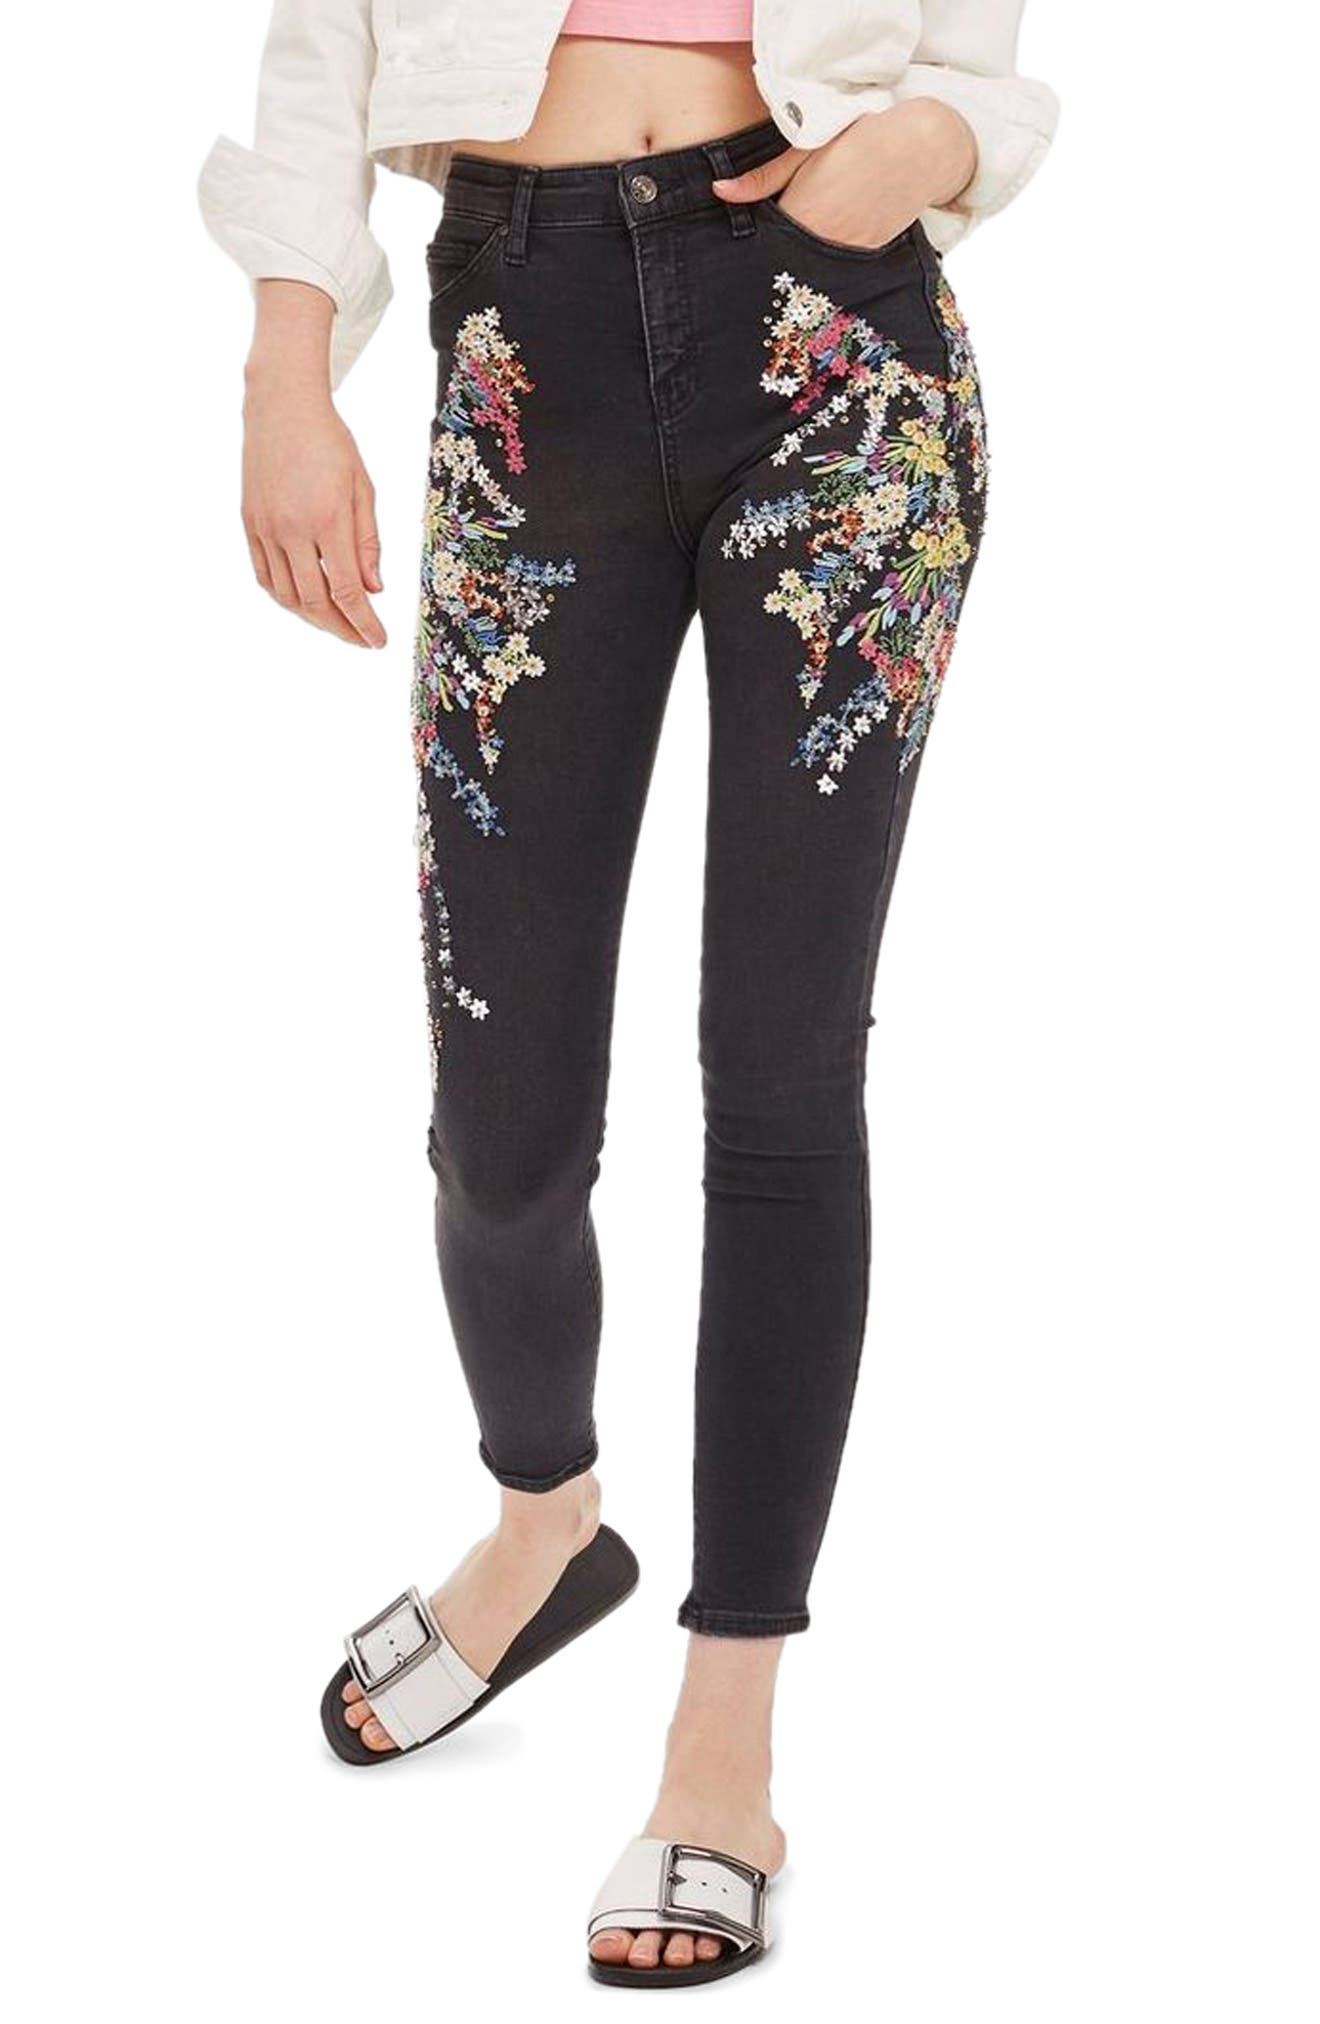 MOTO Jamie Ditzy Embellished Jeans,                         Main,                         color,